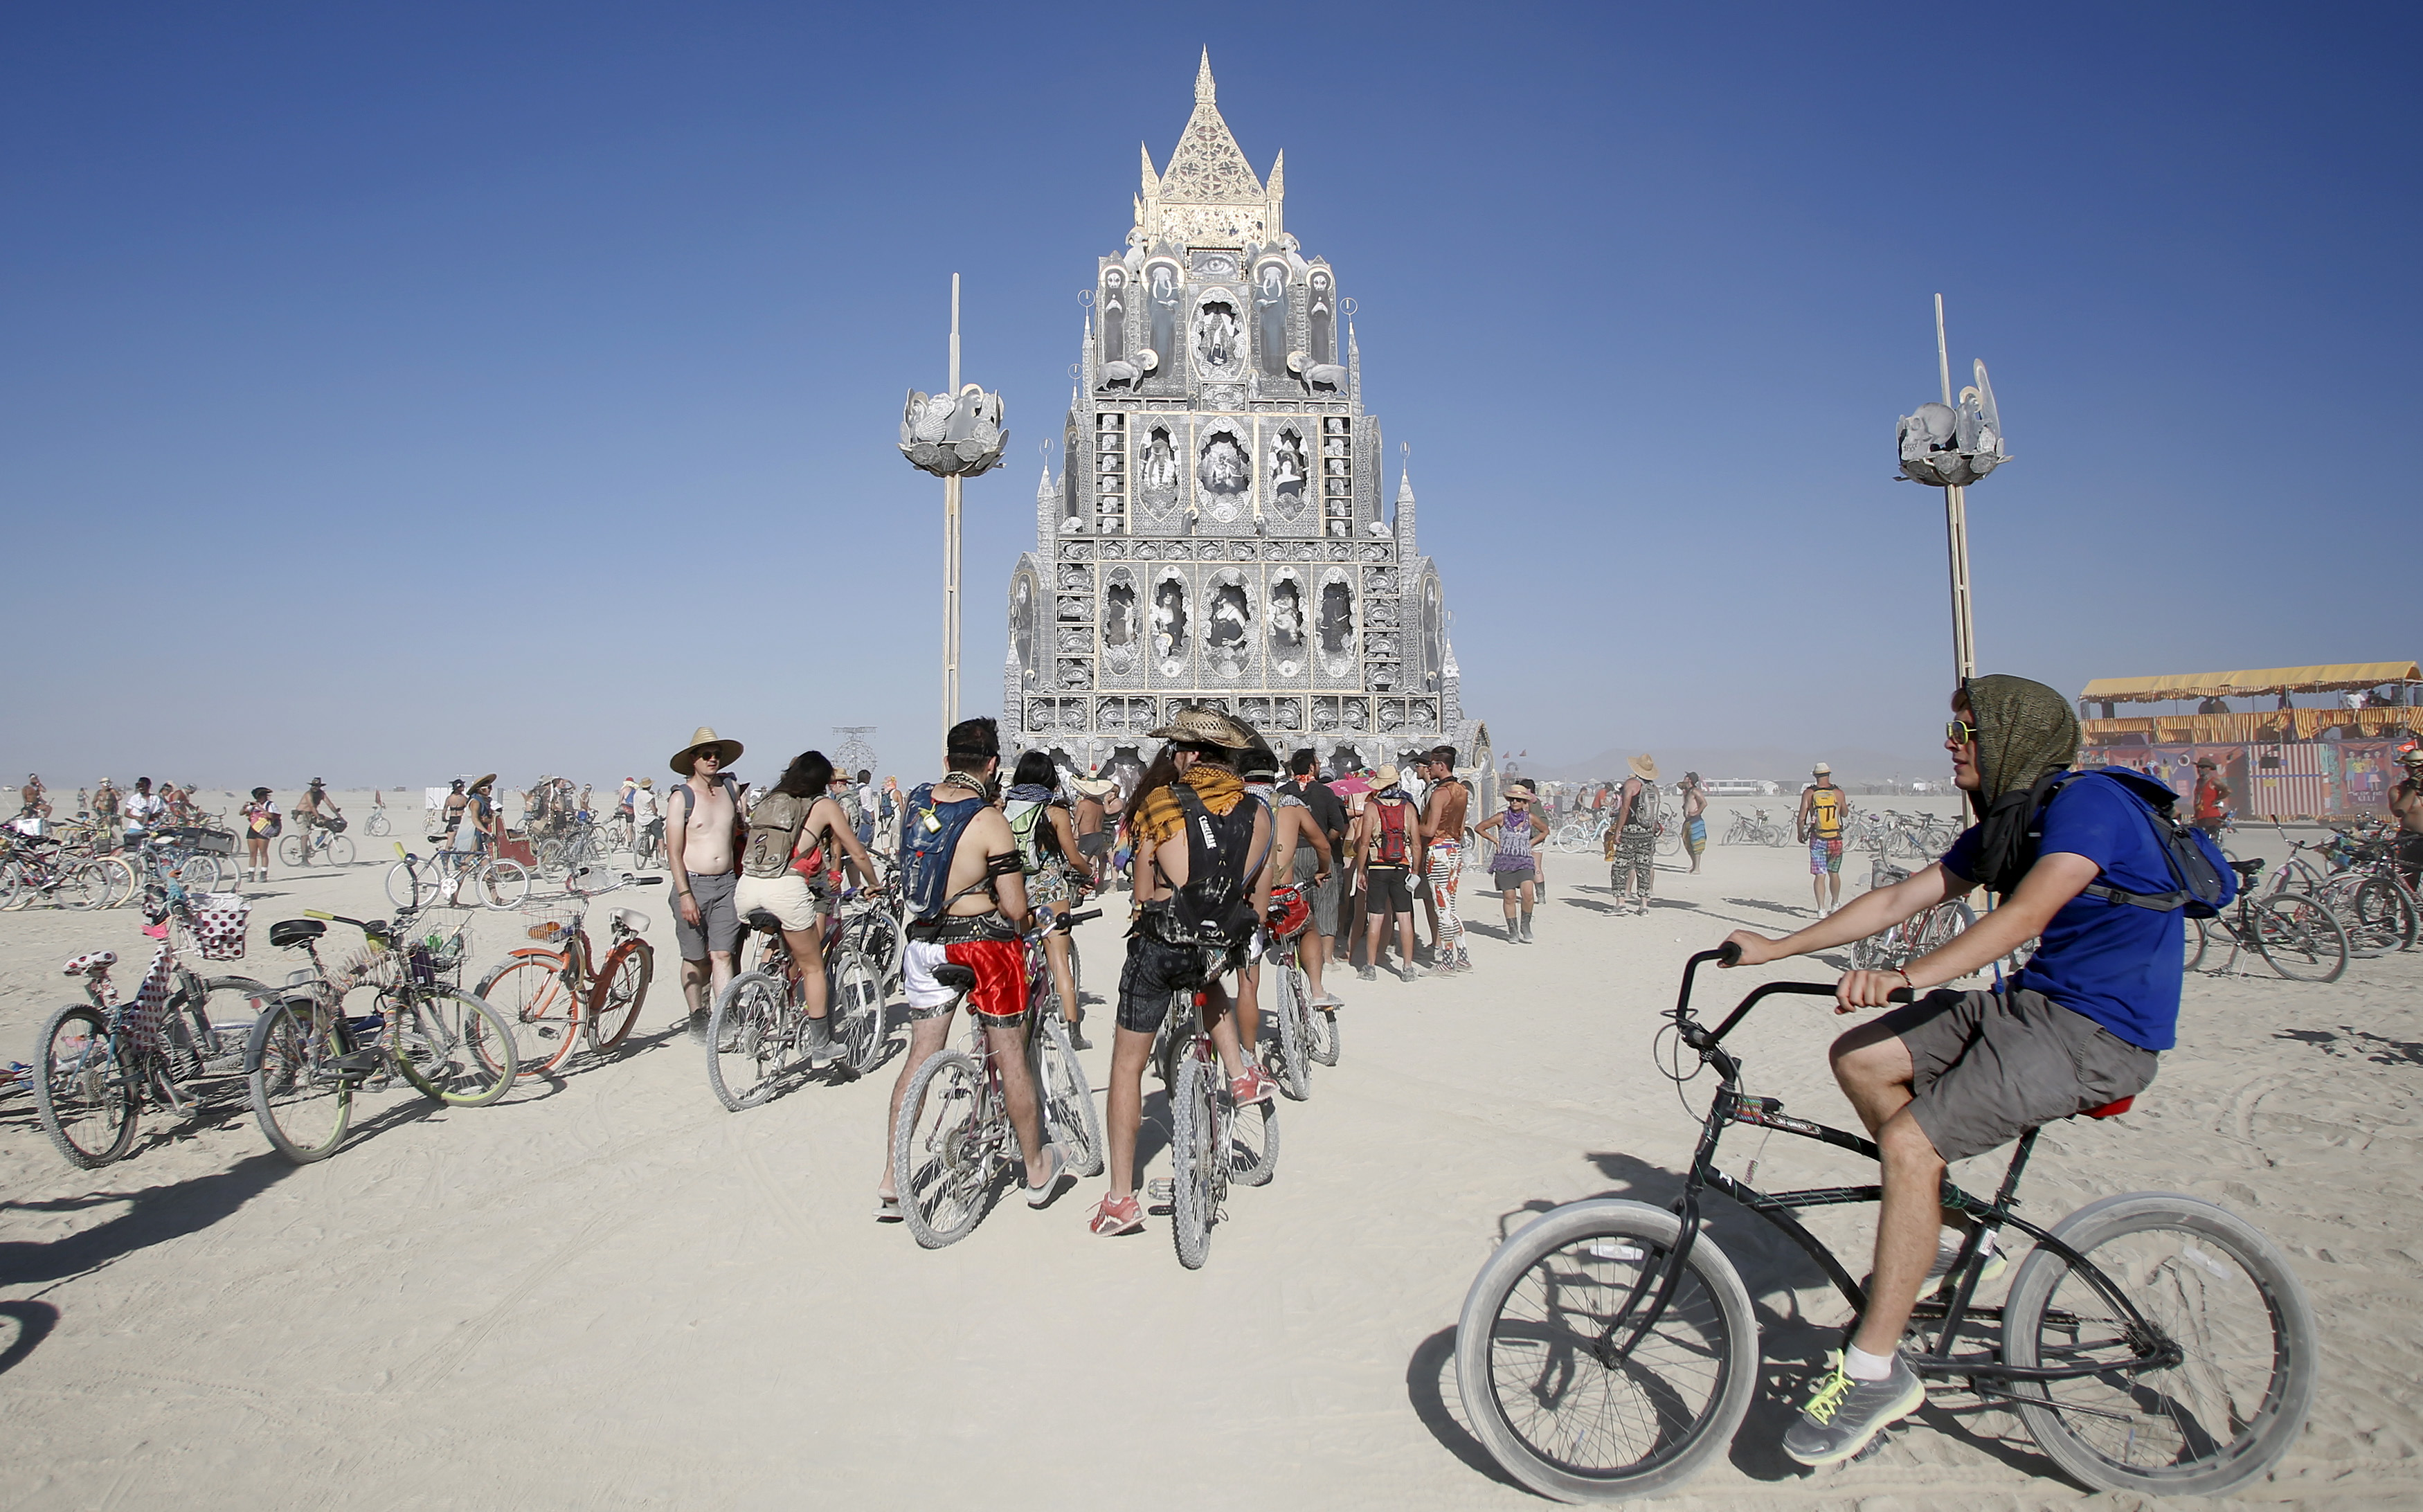 "Participants gather at the art installation ""Totem of Confessions"" during the Burning Man 2015 ""Carnival of Mirrors"" arts and music festival in the Black Rock Desert of Nevada, August 31, 2015. Approximately 70,000 people from all over the world are gathering at the sold-out festival to spend a week in the remote desert to experience art, music and the unique community that develops. REUTERS/Jim Urquhart FOR USE WITH BURNING MAN RELATED REPORTING ONLY. FOR EDITORIAL USE ONLY. NOT FOR SALE FOR MARKETING OR ADVERTISING CAMPAIGNS. NO THIRD PARTY SALES. NOT FOR USE BY REUTERS THIRD PARTY DISTRIBUTORS. - RTX1QIMT"